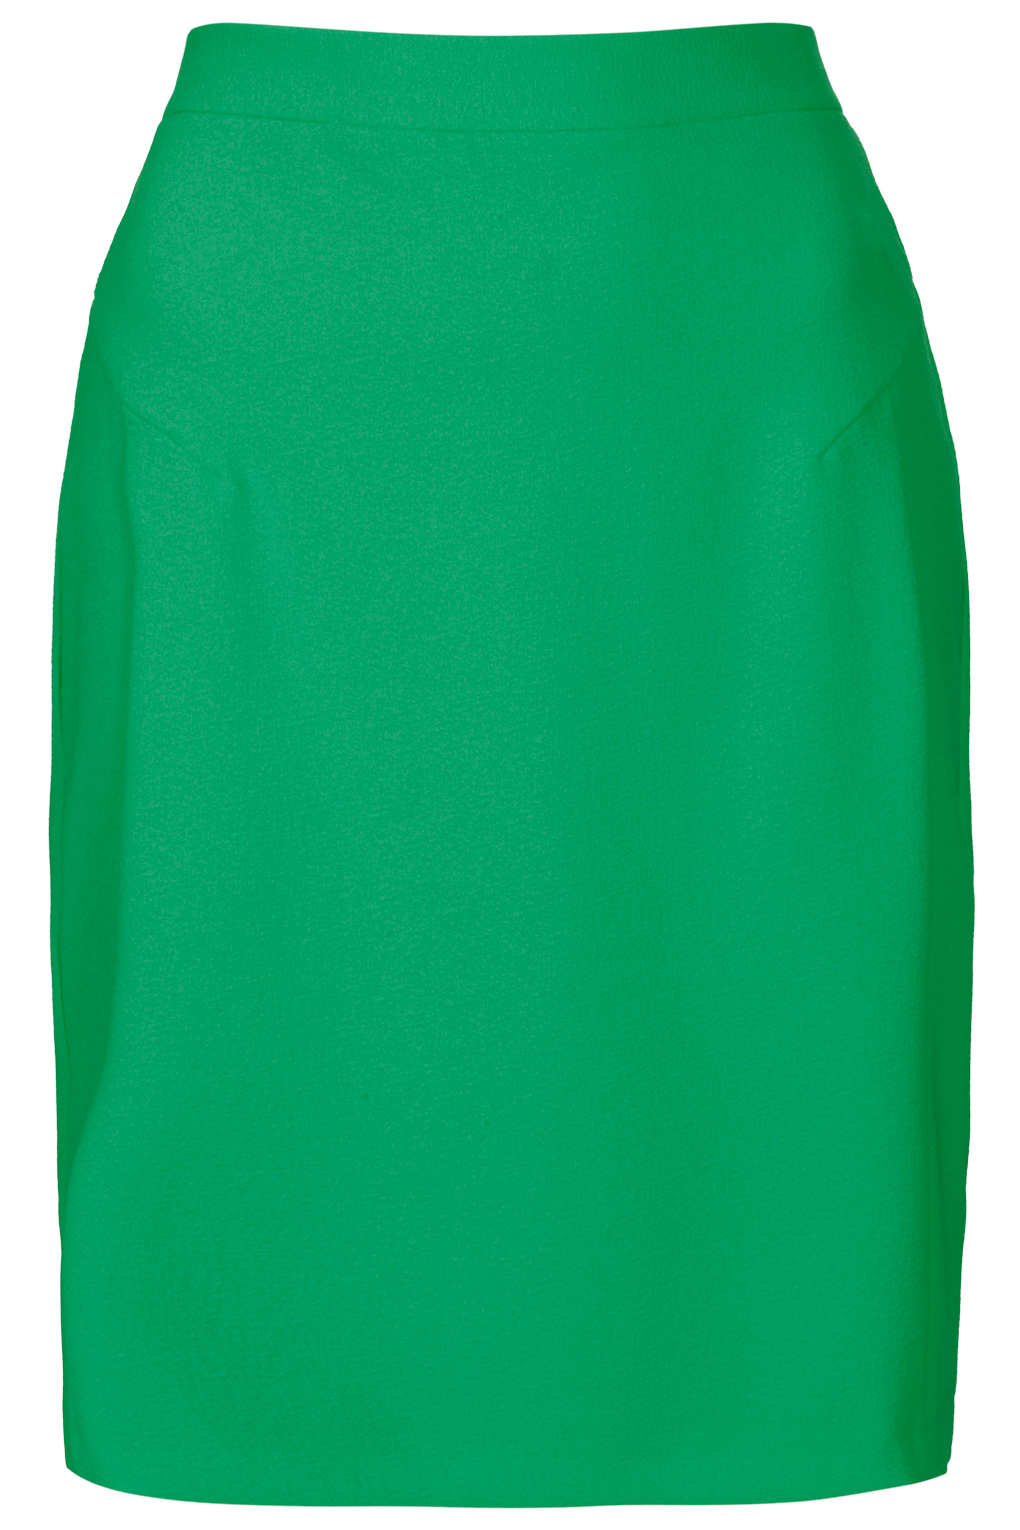 topshop green crepe pencil skirt in green lyst